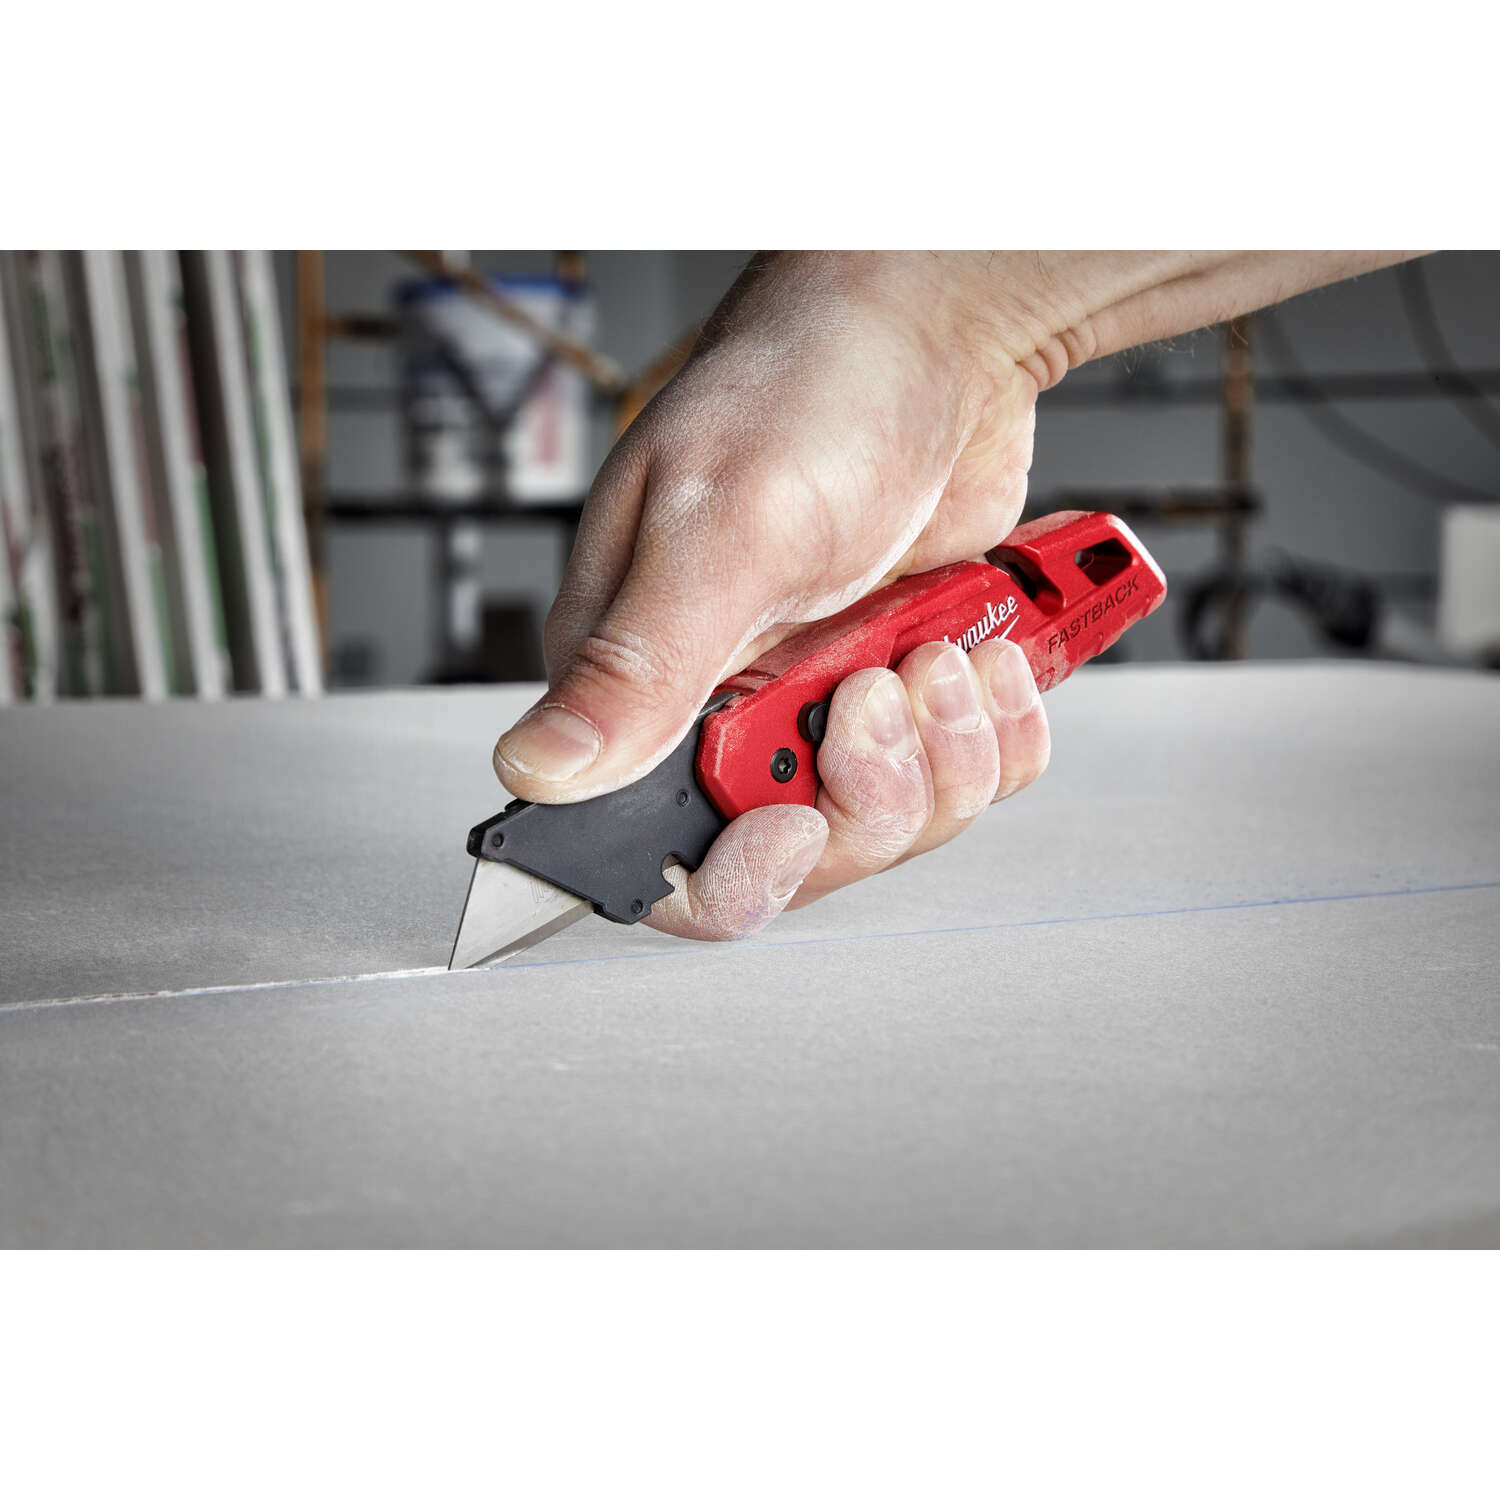 Milwaukee  Fastback  6-3/4 in. Press and Flip  Utility Knife  1 pk Red